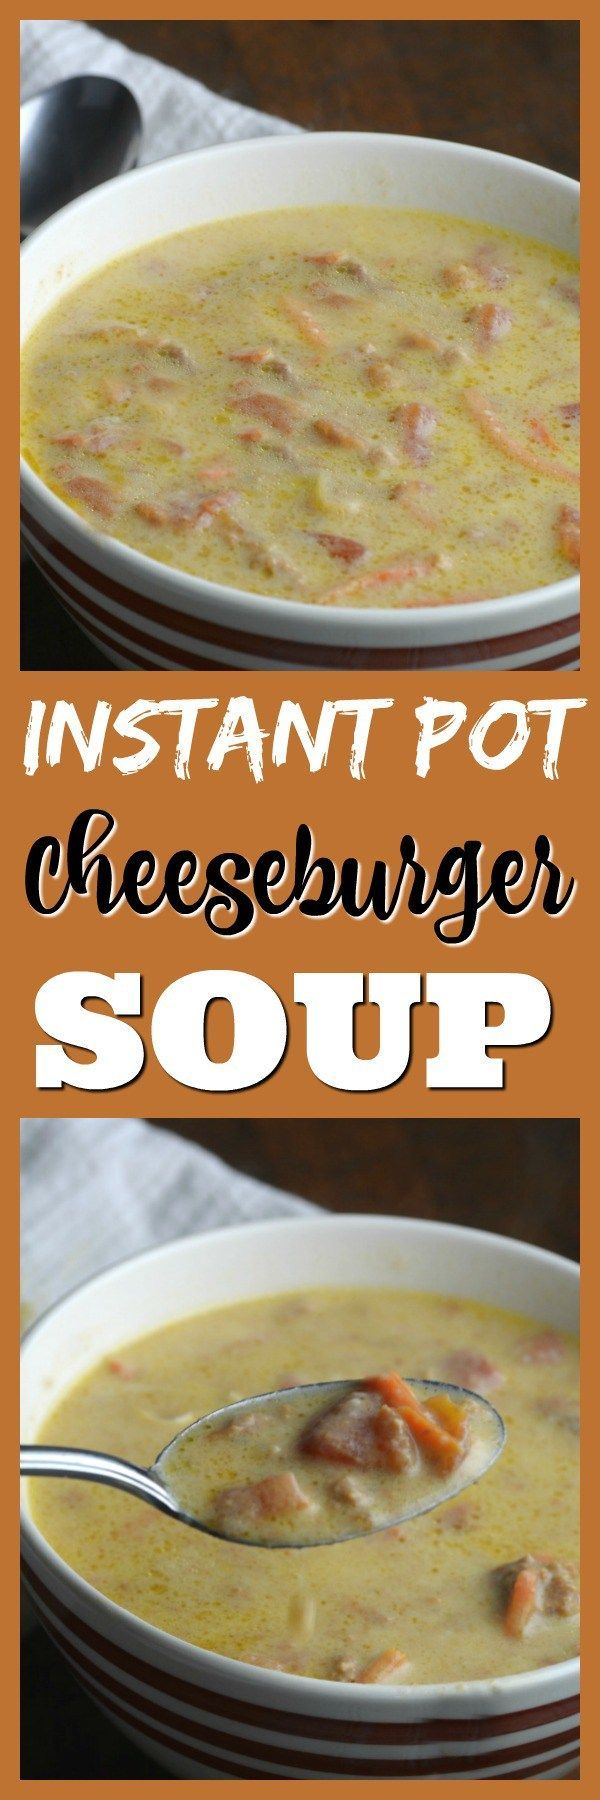 Share with friends Instant Pot Cheeseburger Soup It has already snowed here in central NY one day it was 62 the next we had a snow storm it figures. I think we are headed for a bad winter this year. That means lots of soups, stews, and casserole's in my Instant pot. Thanksgiving is over and …